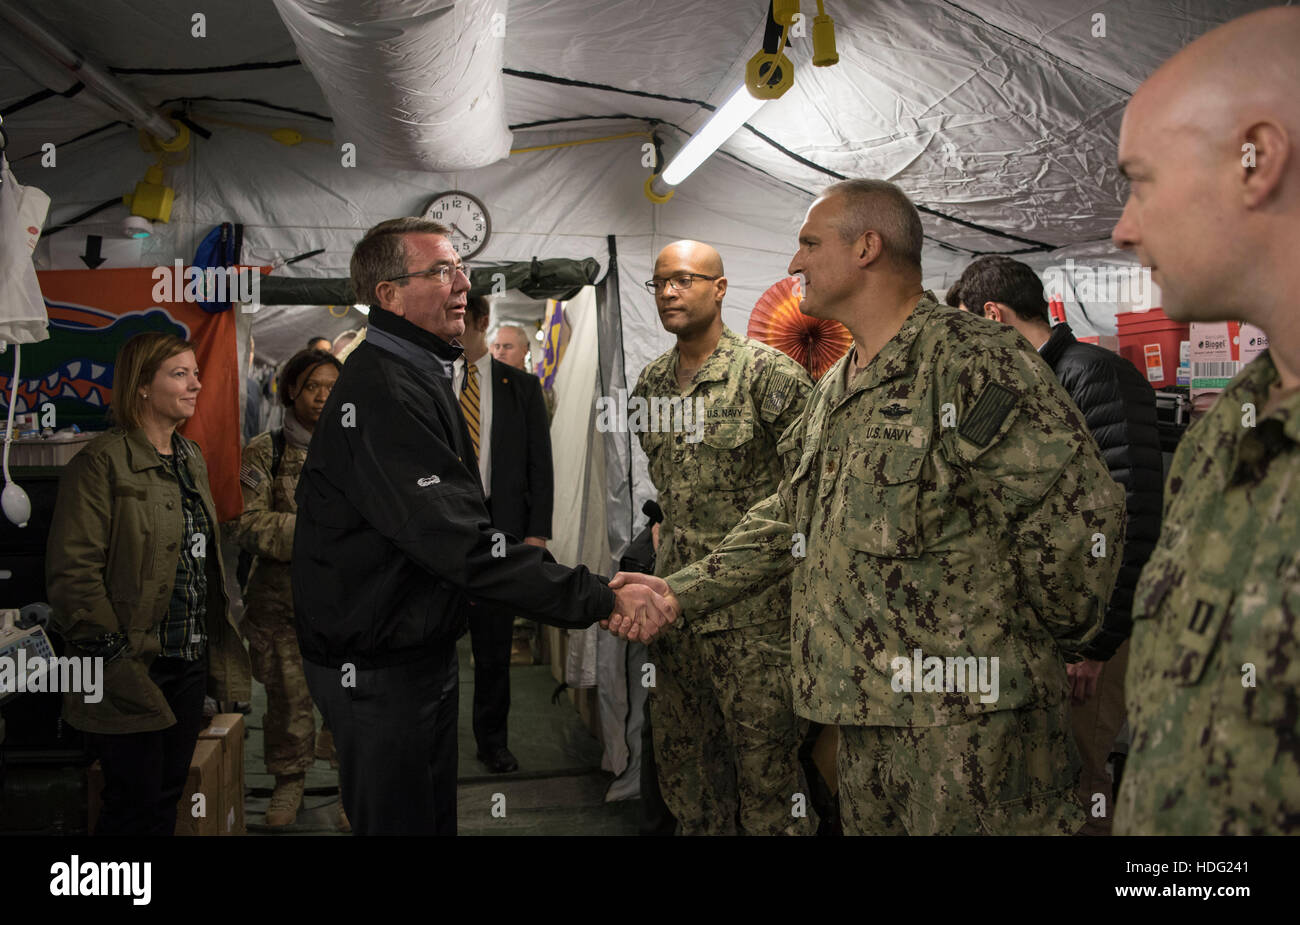 U.S Secretary of Defense Ashton Carter thanks U.S. service members at Qayyarah Airfield West December 11, 2016 near - Stock Image